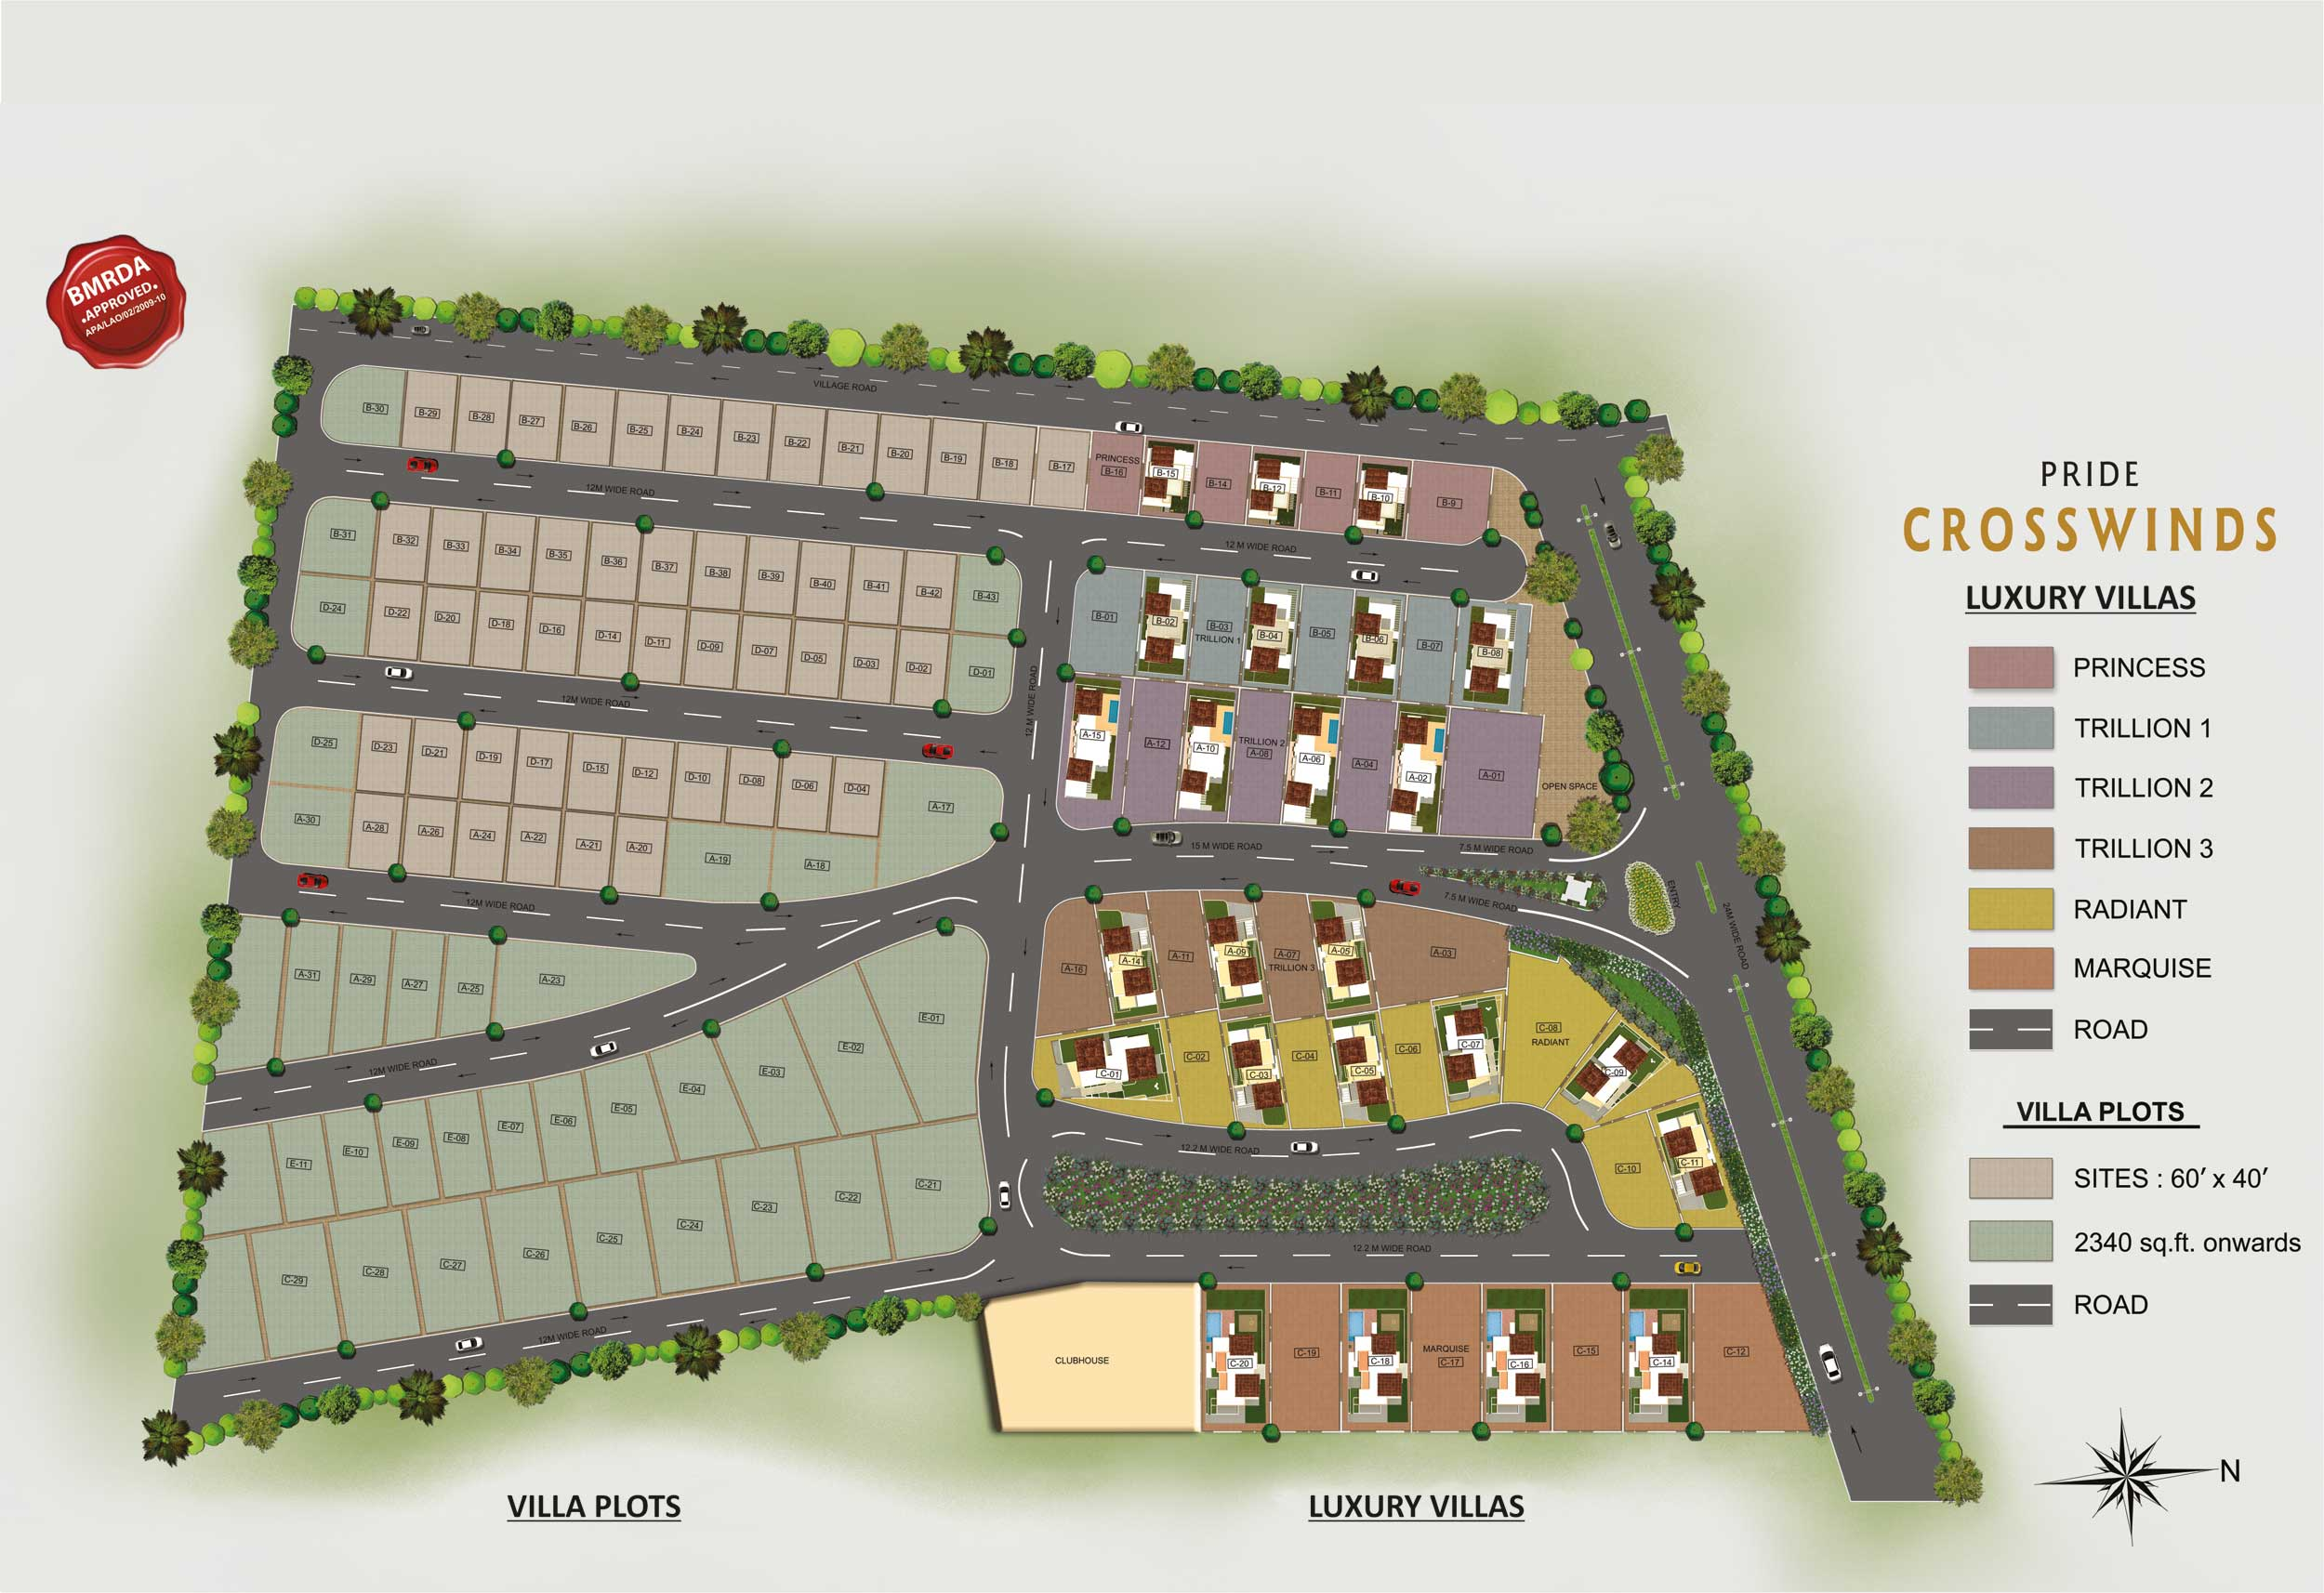 BMRDA Approved villa Plots for sale near Jigani Ultra Primium Villa Plots with Aesthetically designed street light posts, Box-type/saucer-type storm water drain, All-round designer compound wall with security room, Fully developed landscaped garden, Avenue tree plantation/shrubs, Lavish club house... www.pridegroup.net/pride-crosswinds-plots